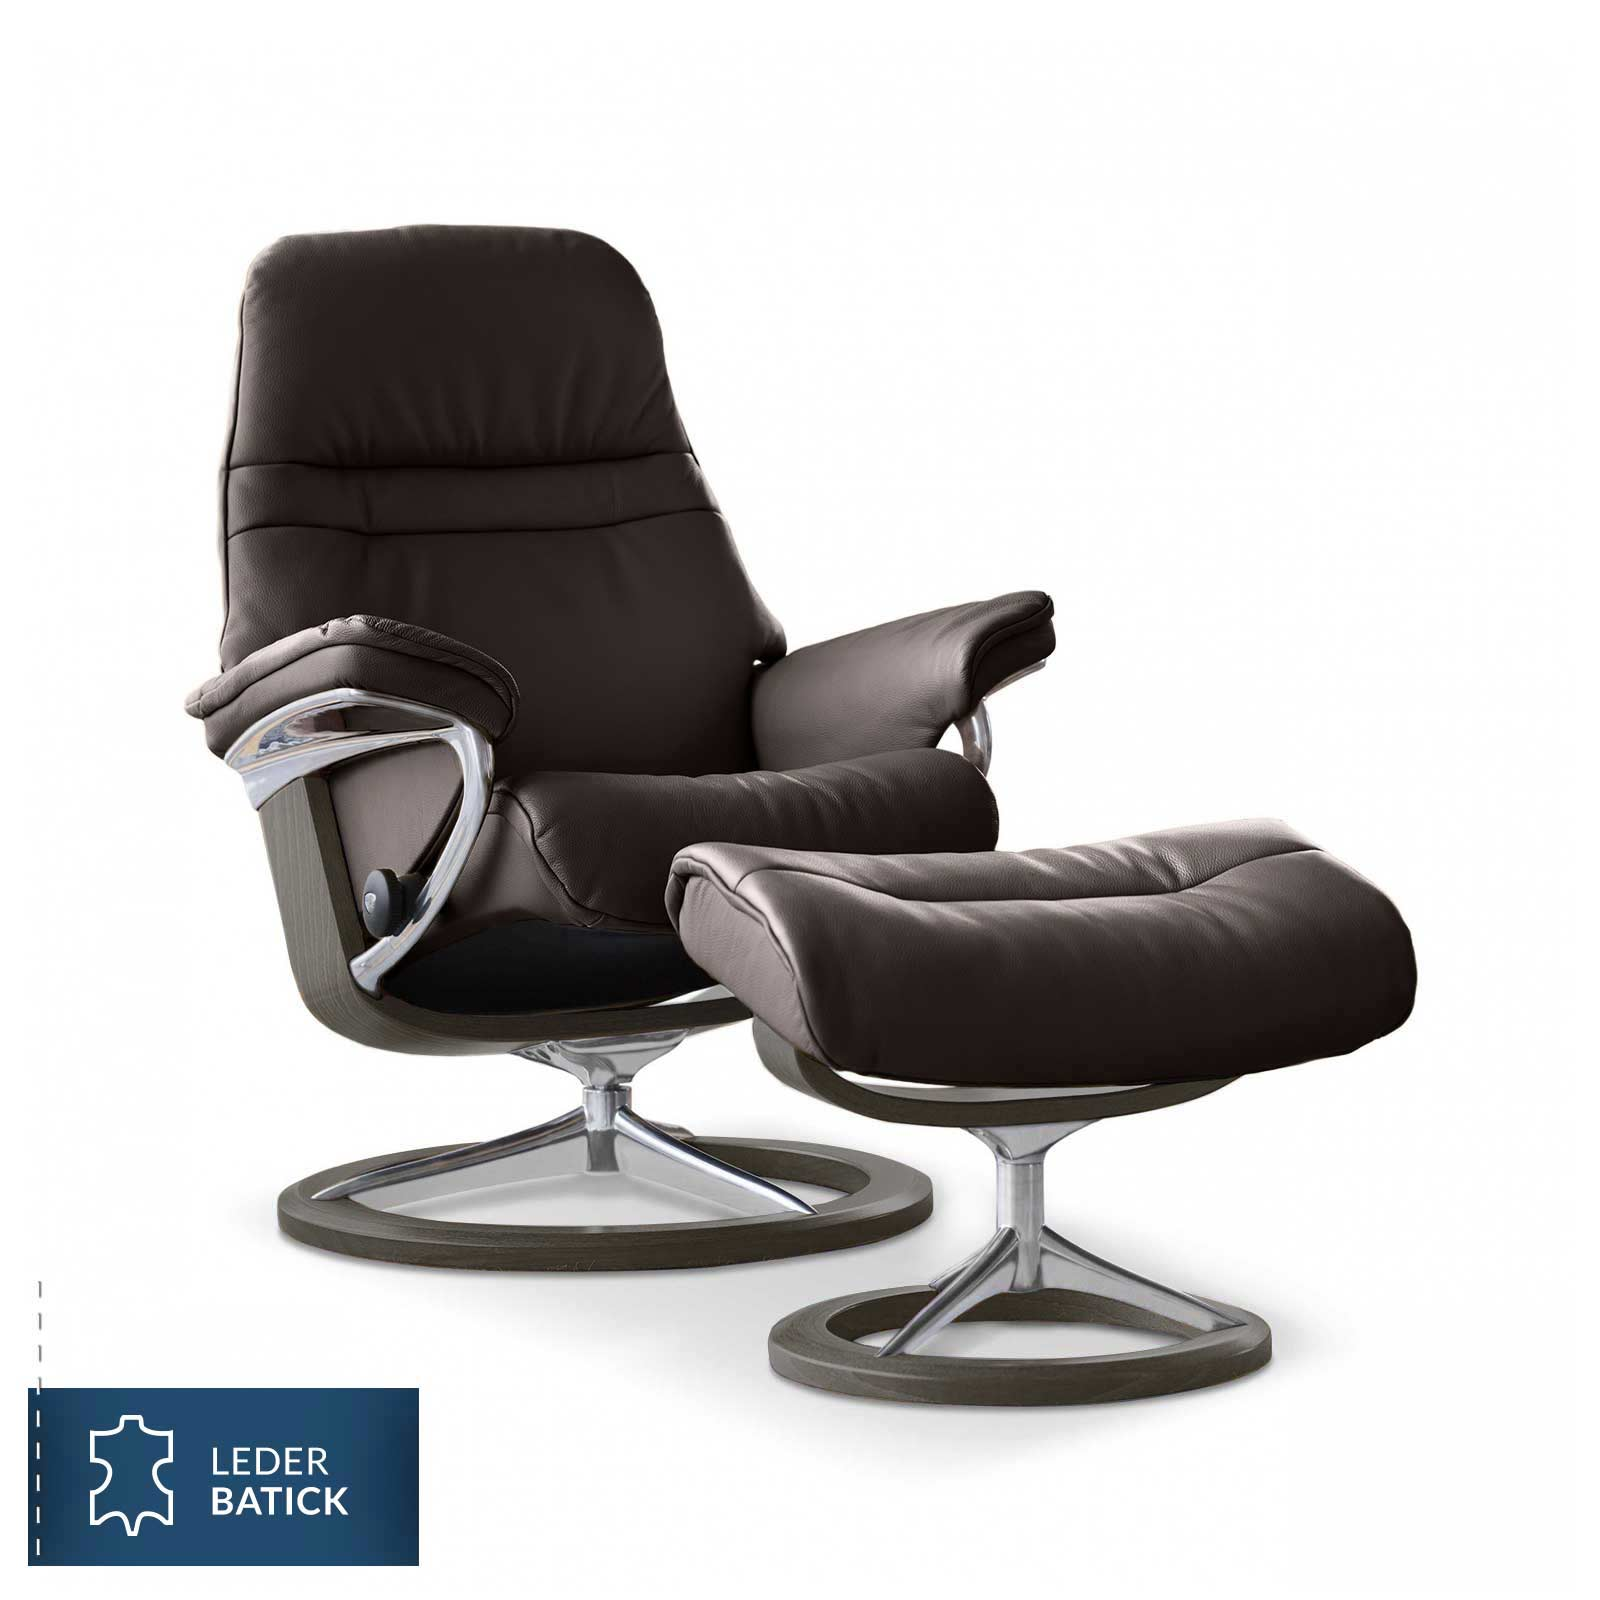 Stressless Sessel Stressless Sunrise Batick Braun Signature Hocker Stressless